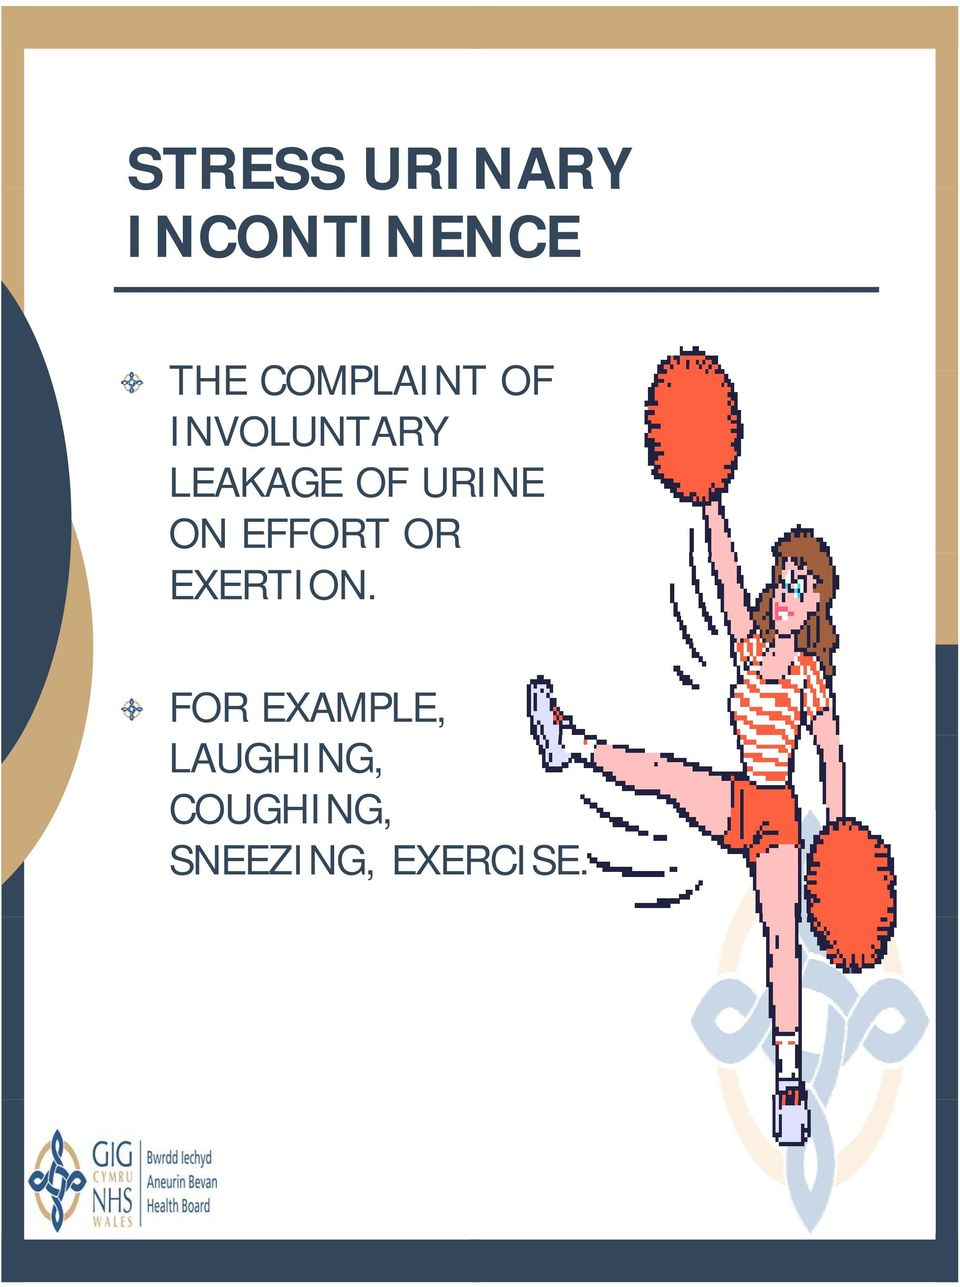 URINE ON EFFORT OR EXERTION.